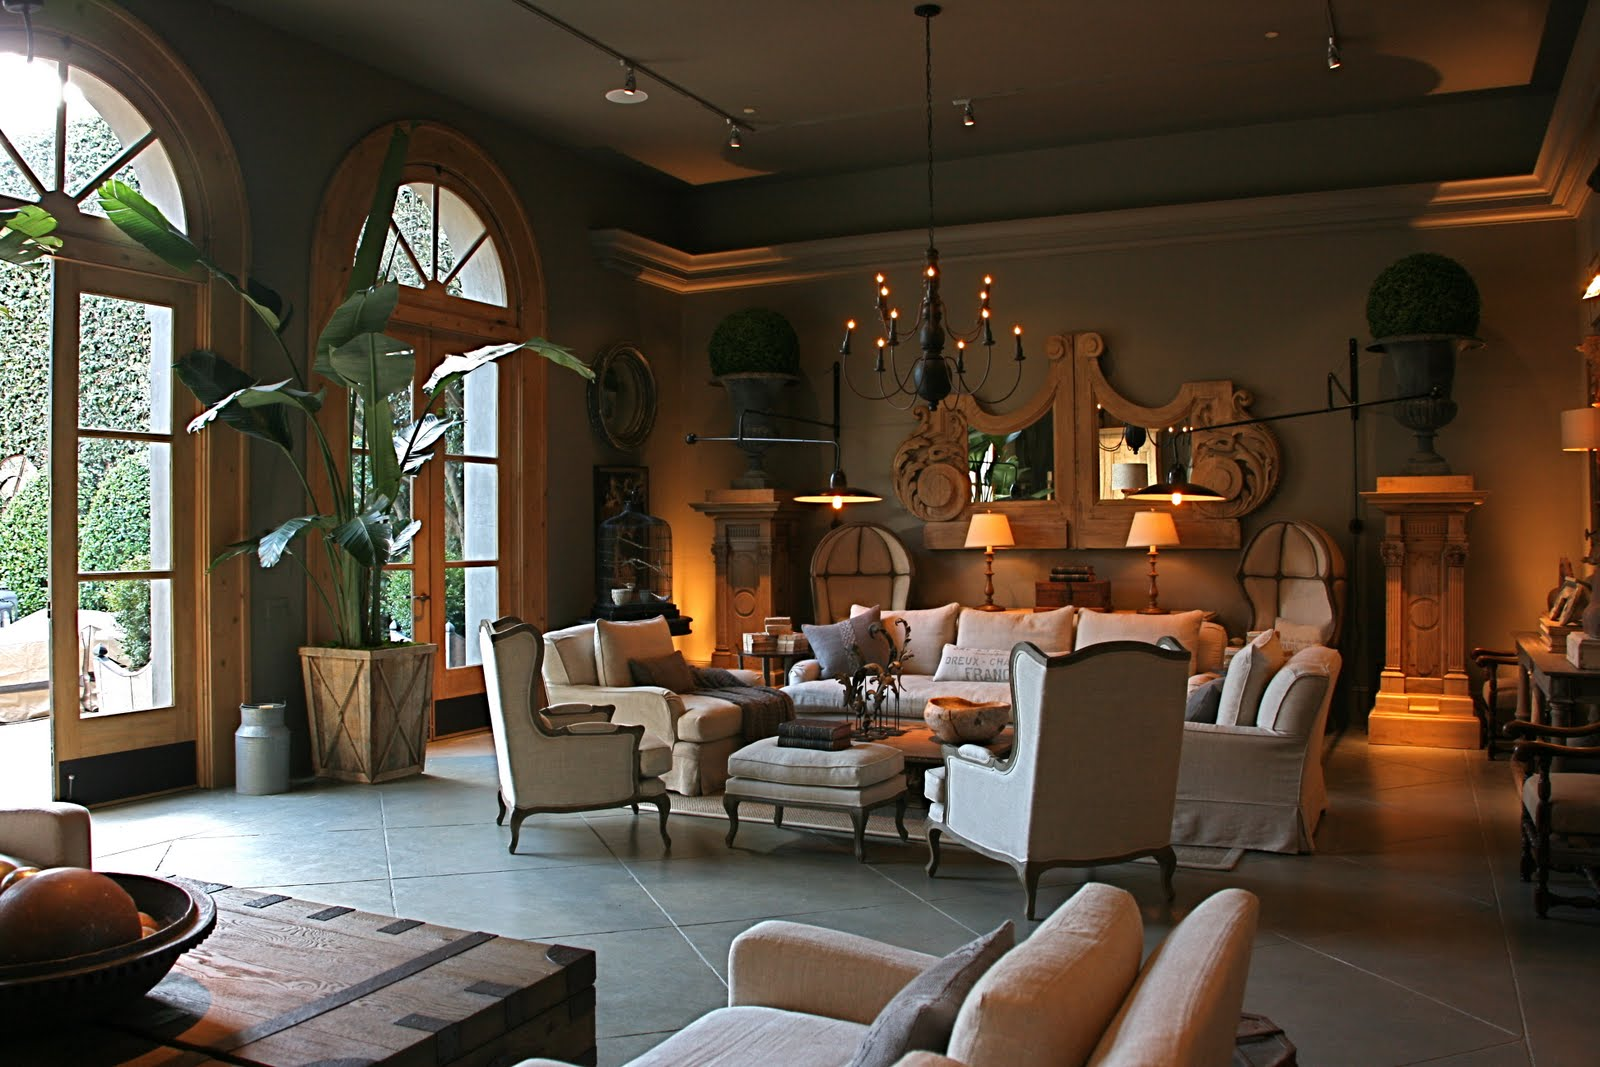 Vignette Design The San Francisco Restoration Hardware